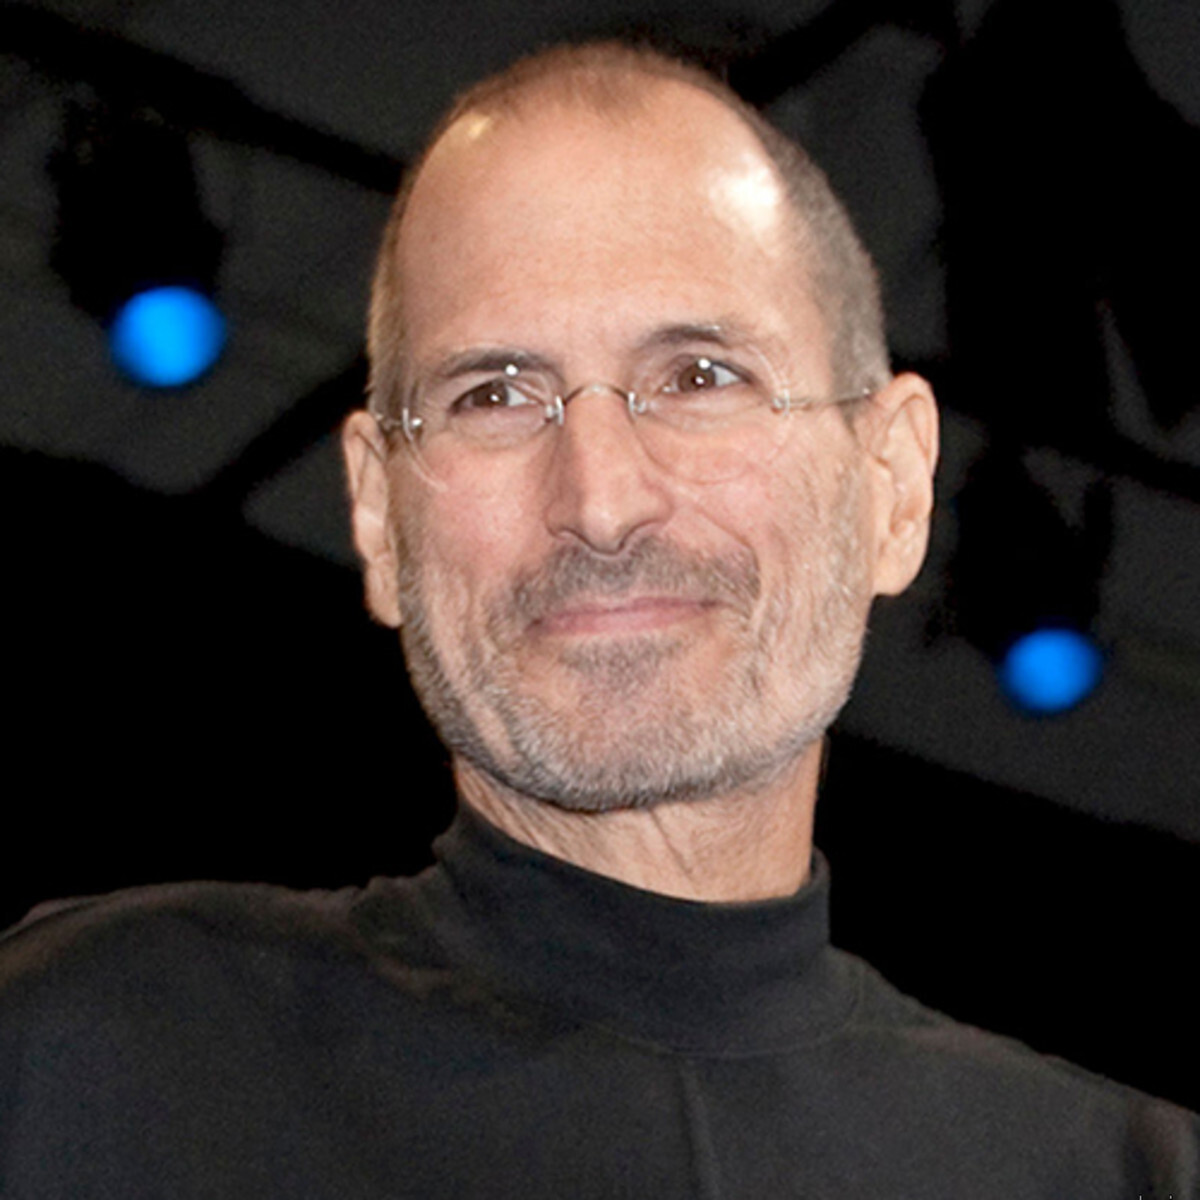 what is the middle name of steve jobs